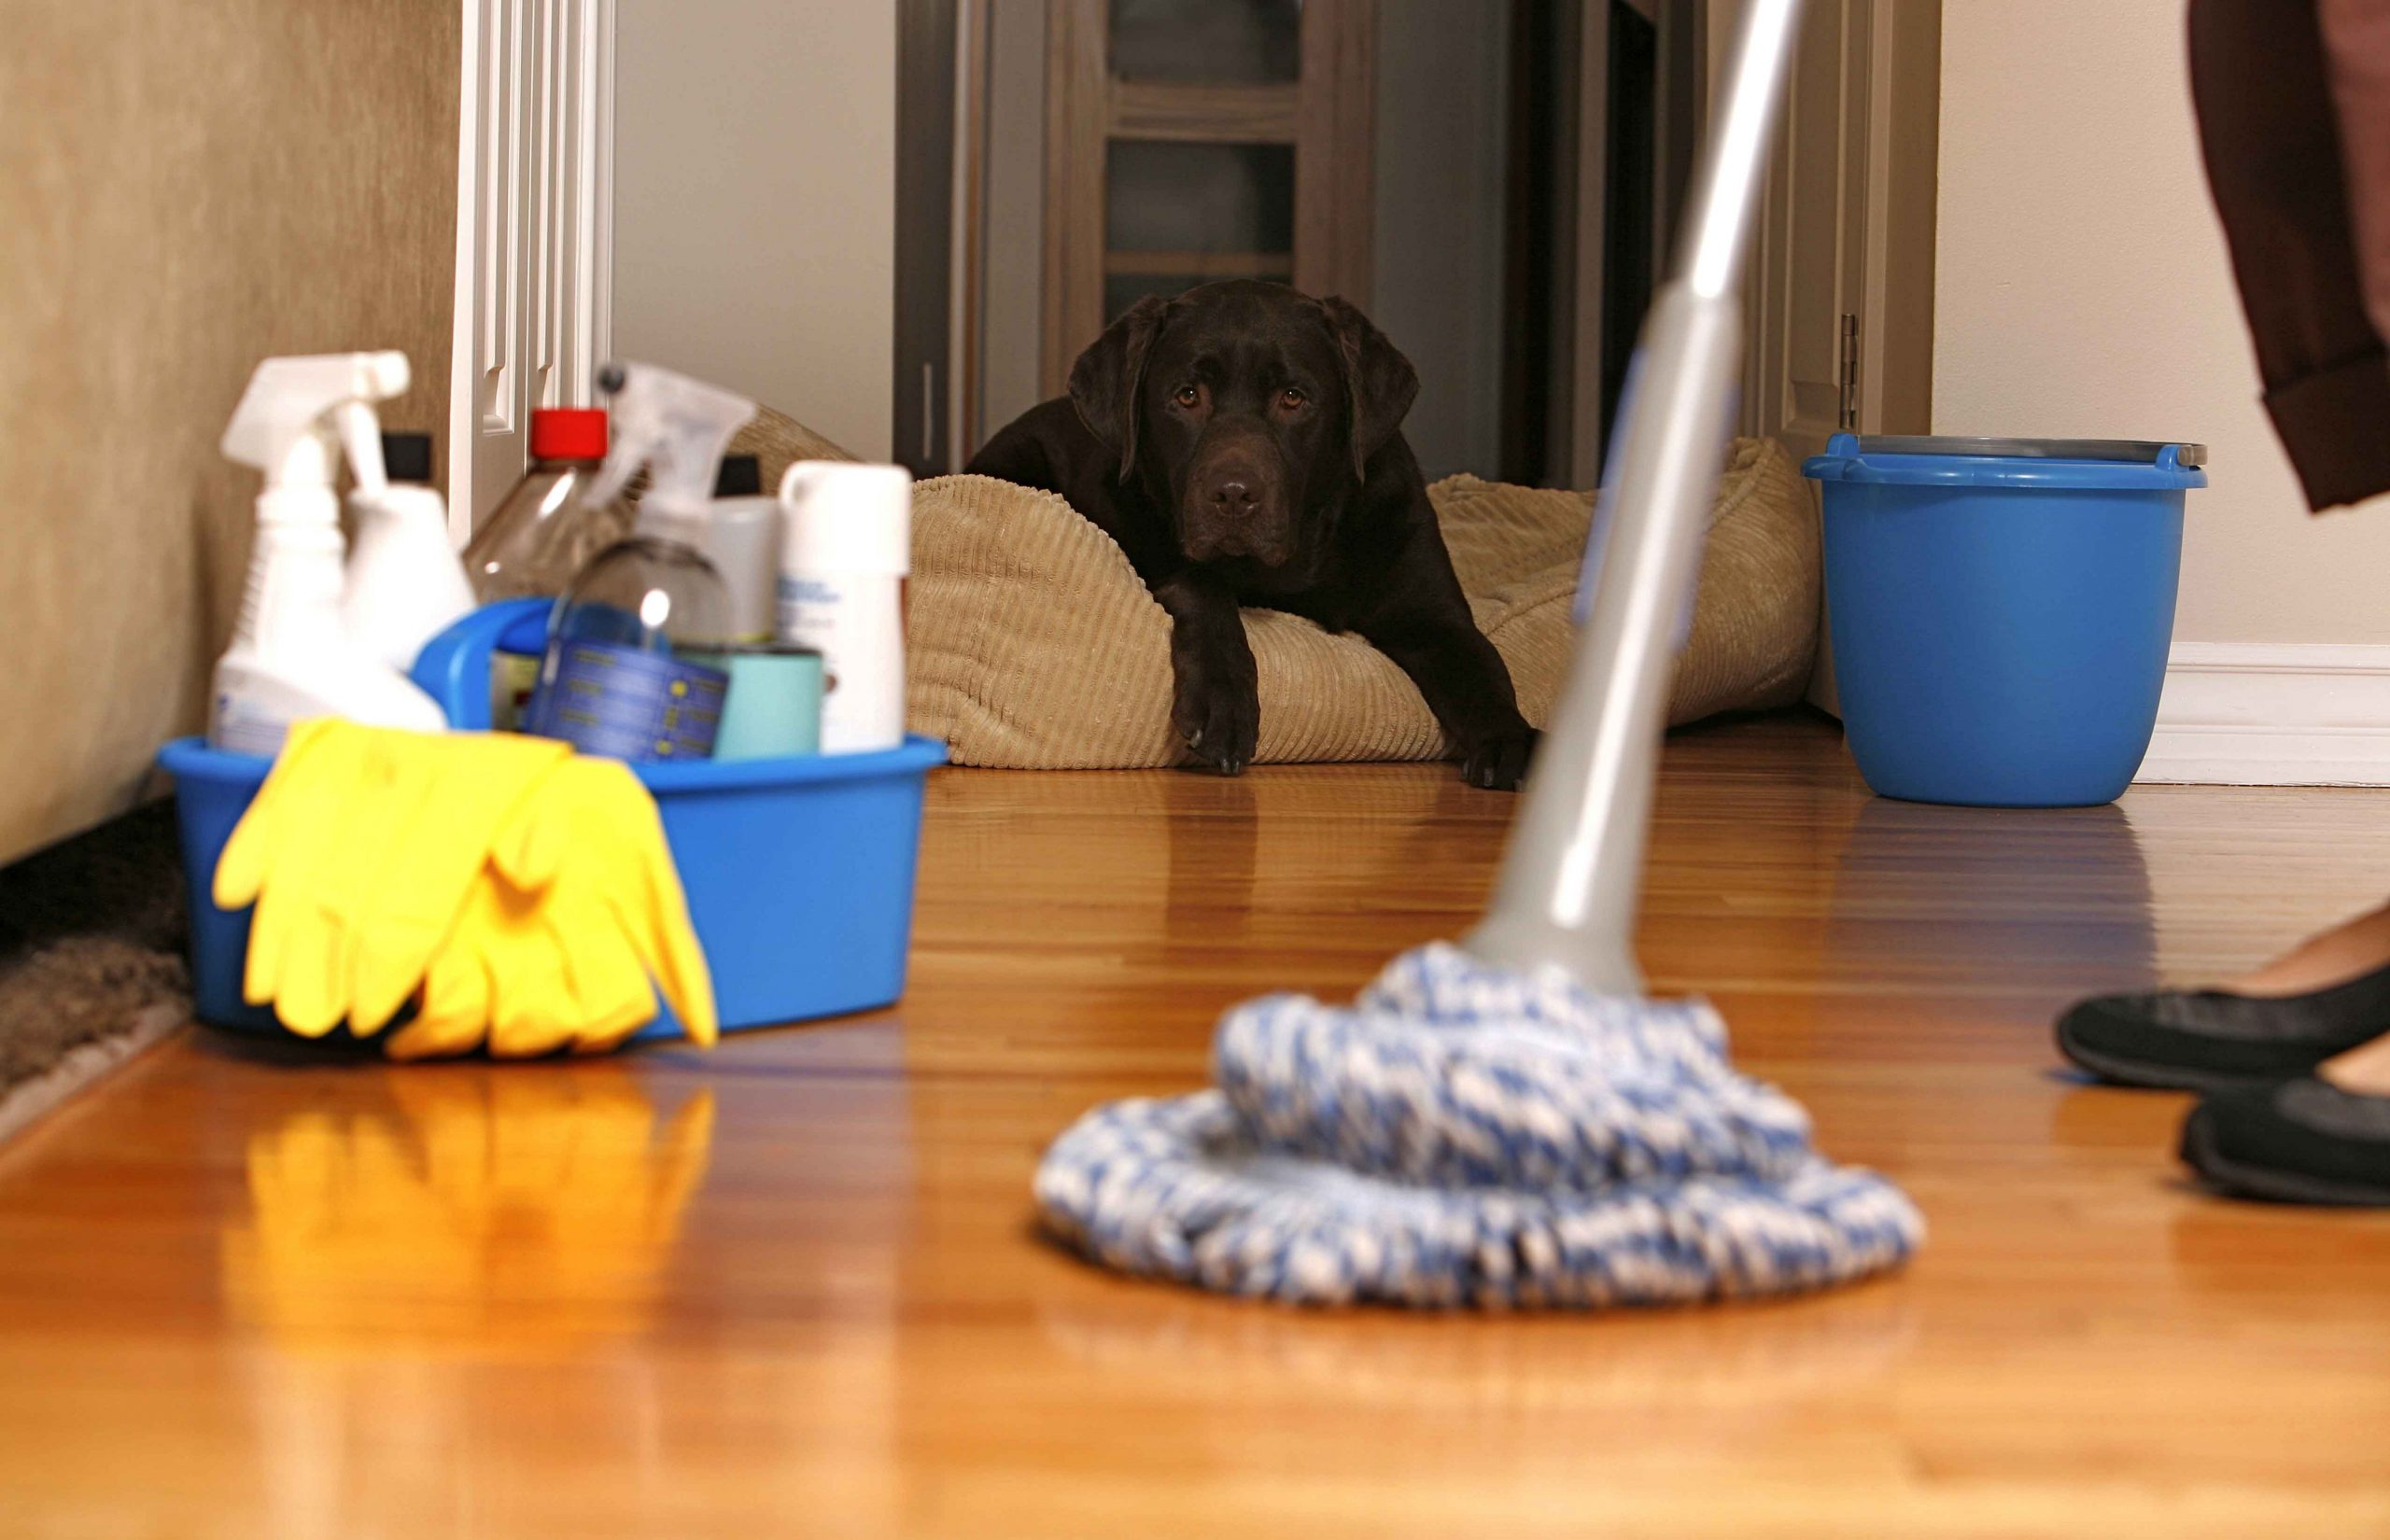 Types of cleaning